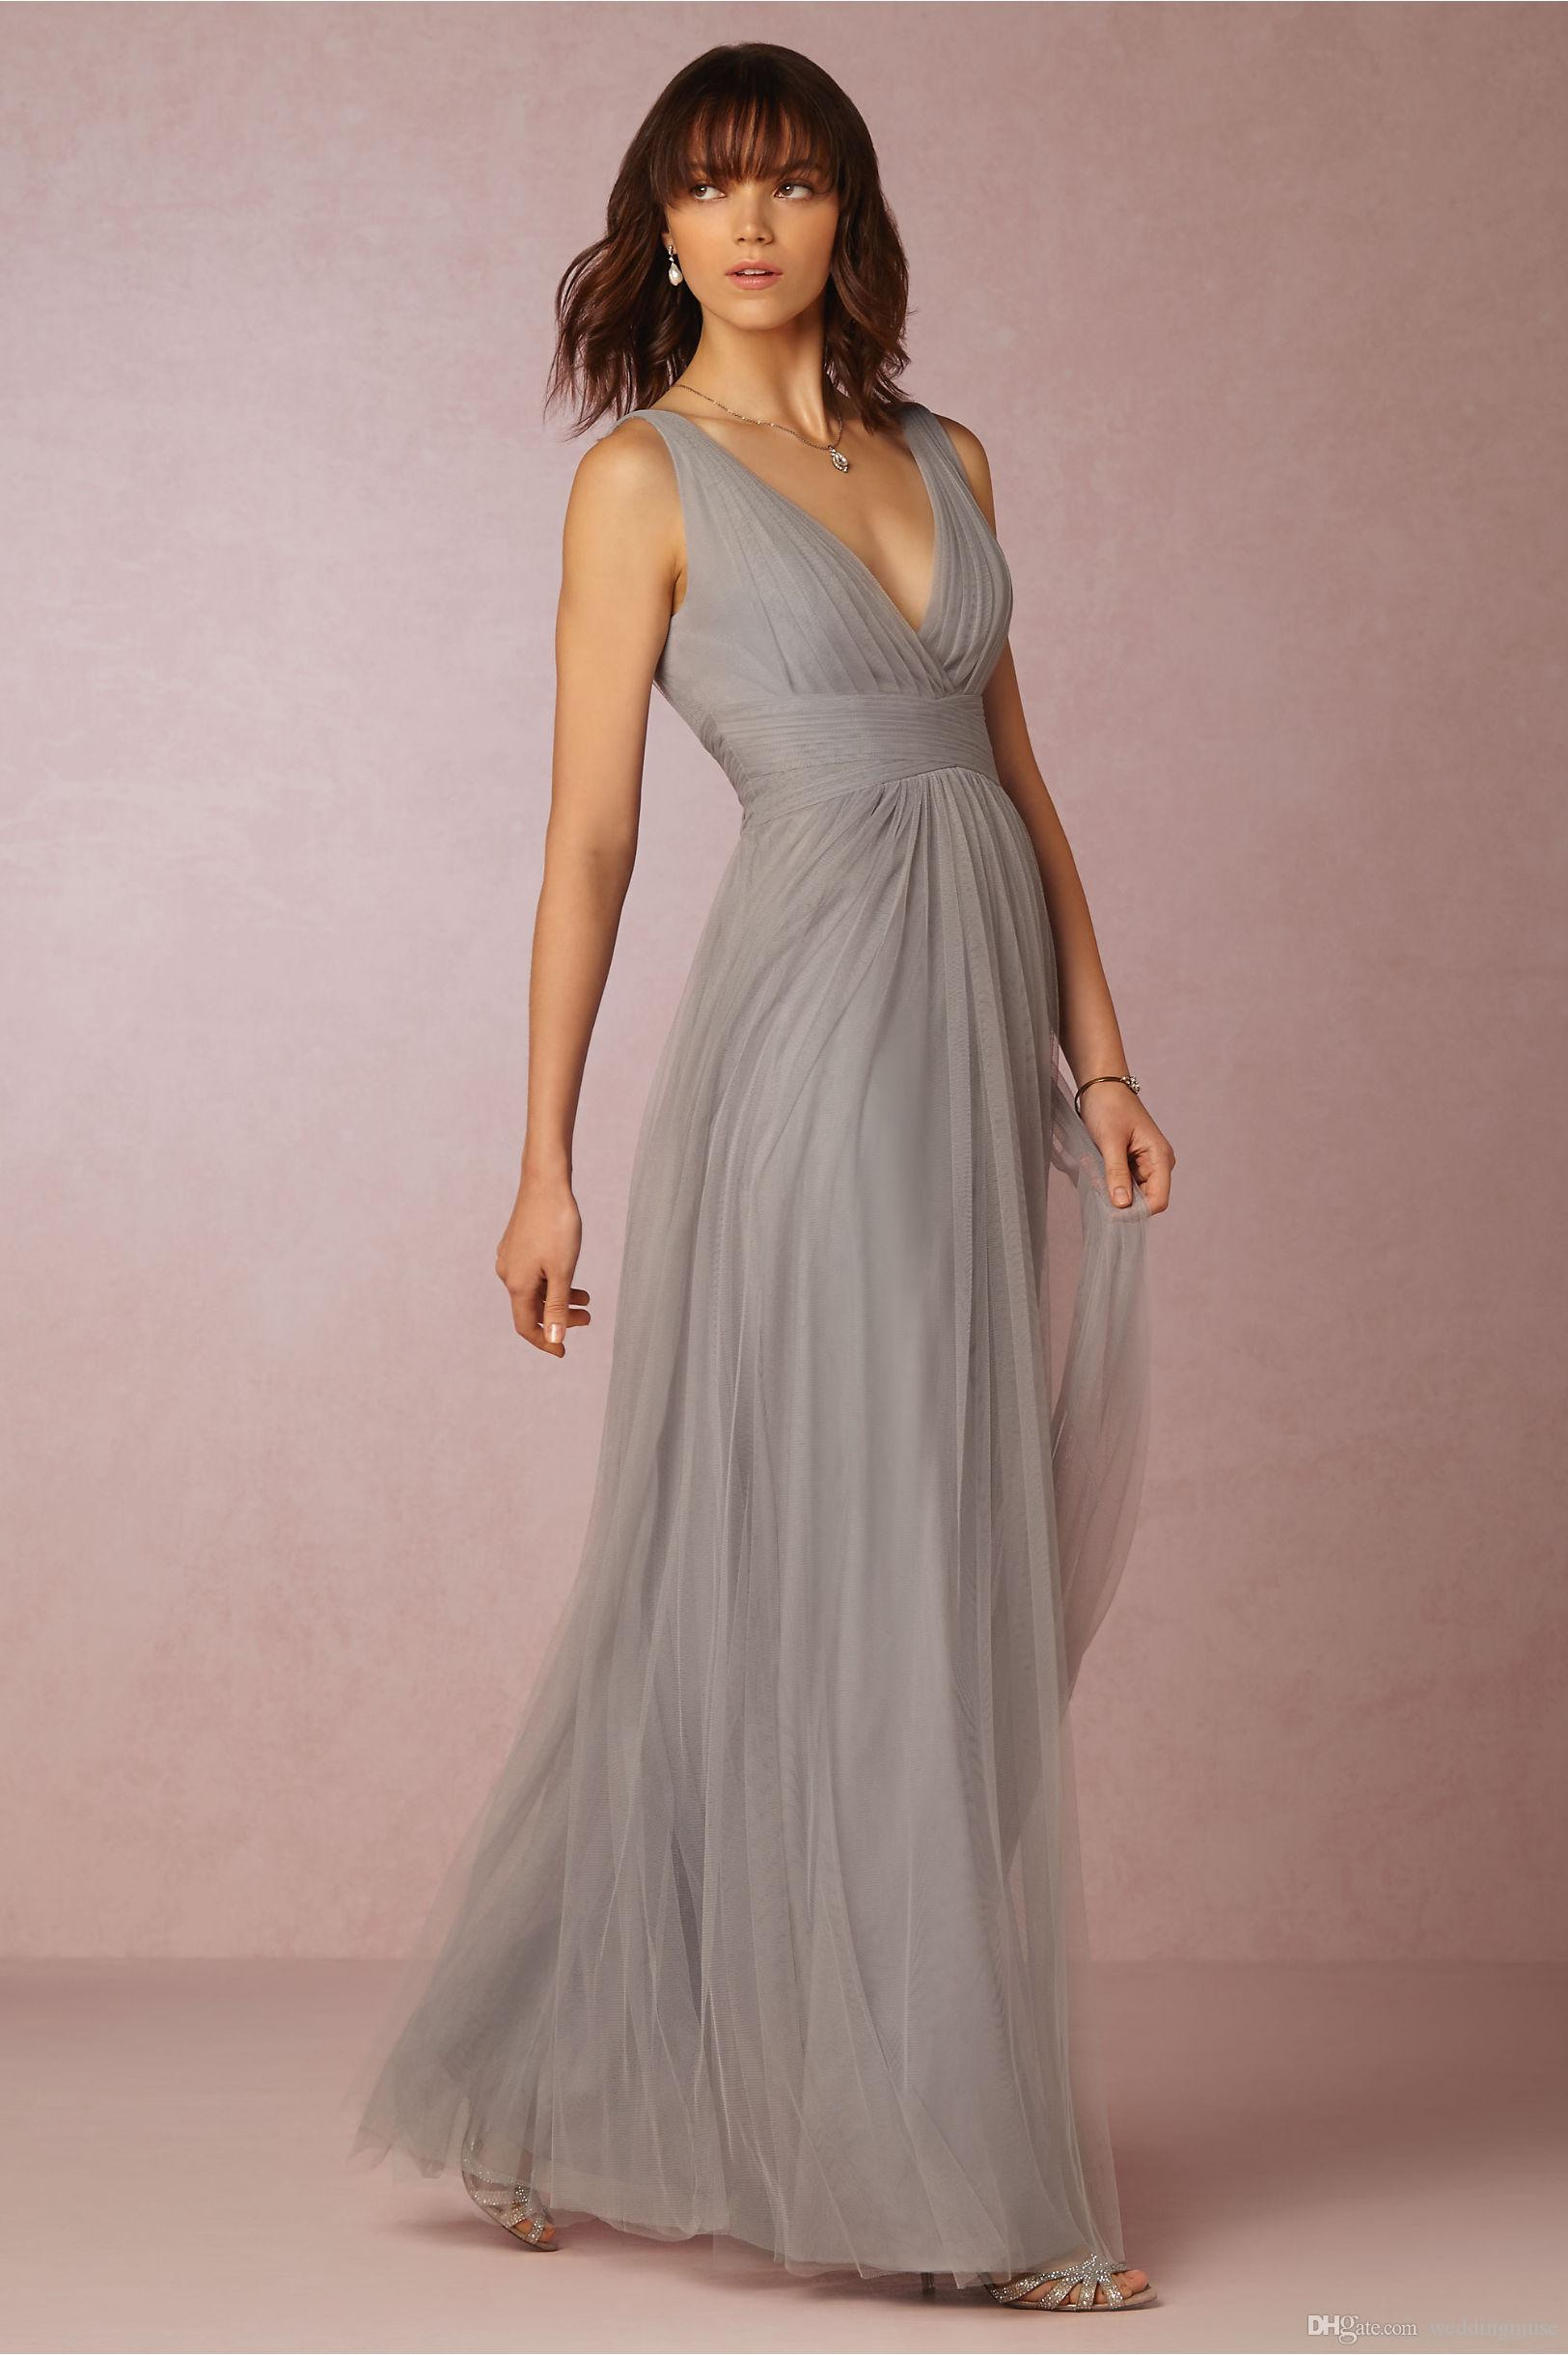 2019 Bridesmaid Dresses Cheap A-Line Grey V-Neck Sleeveless Pleat Tulle Floor Length Maid Honor Special Occasion Dresses For Wedding